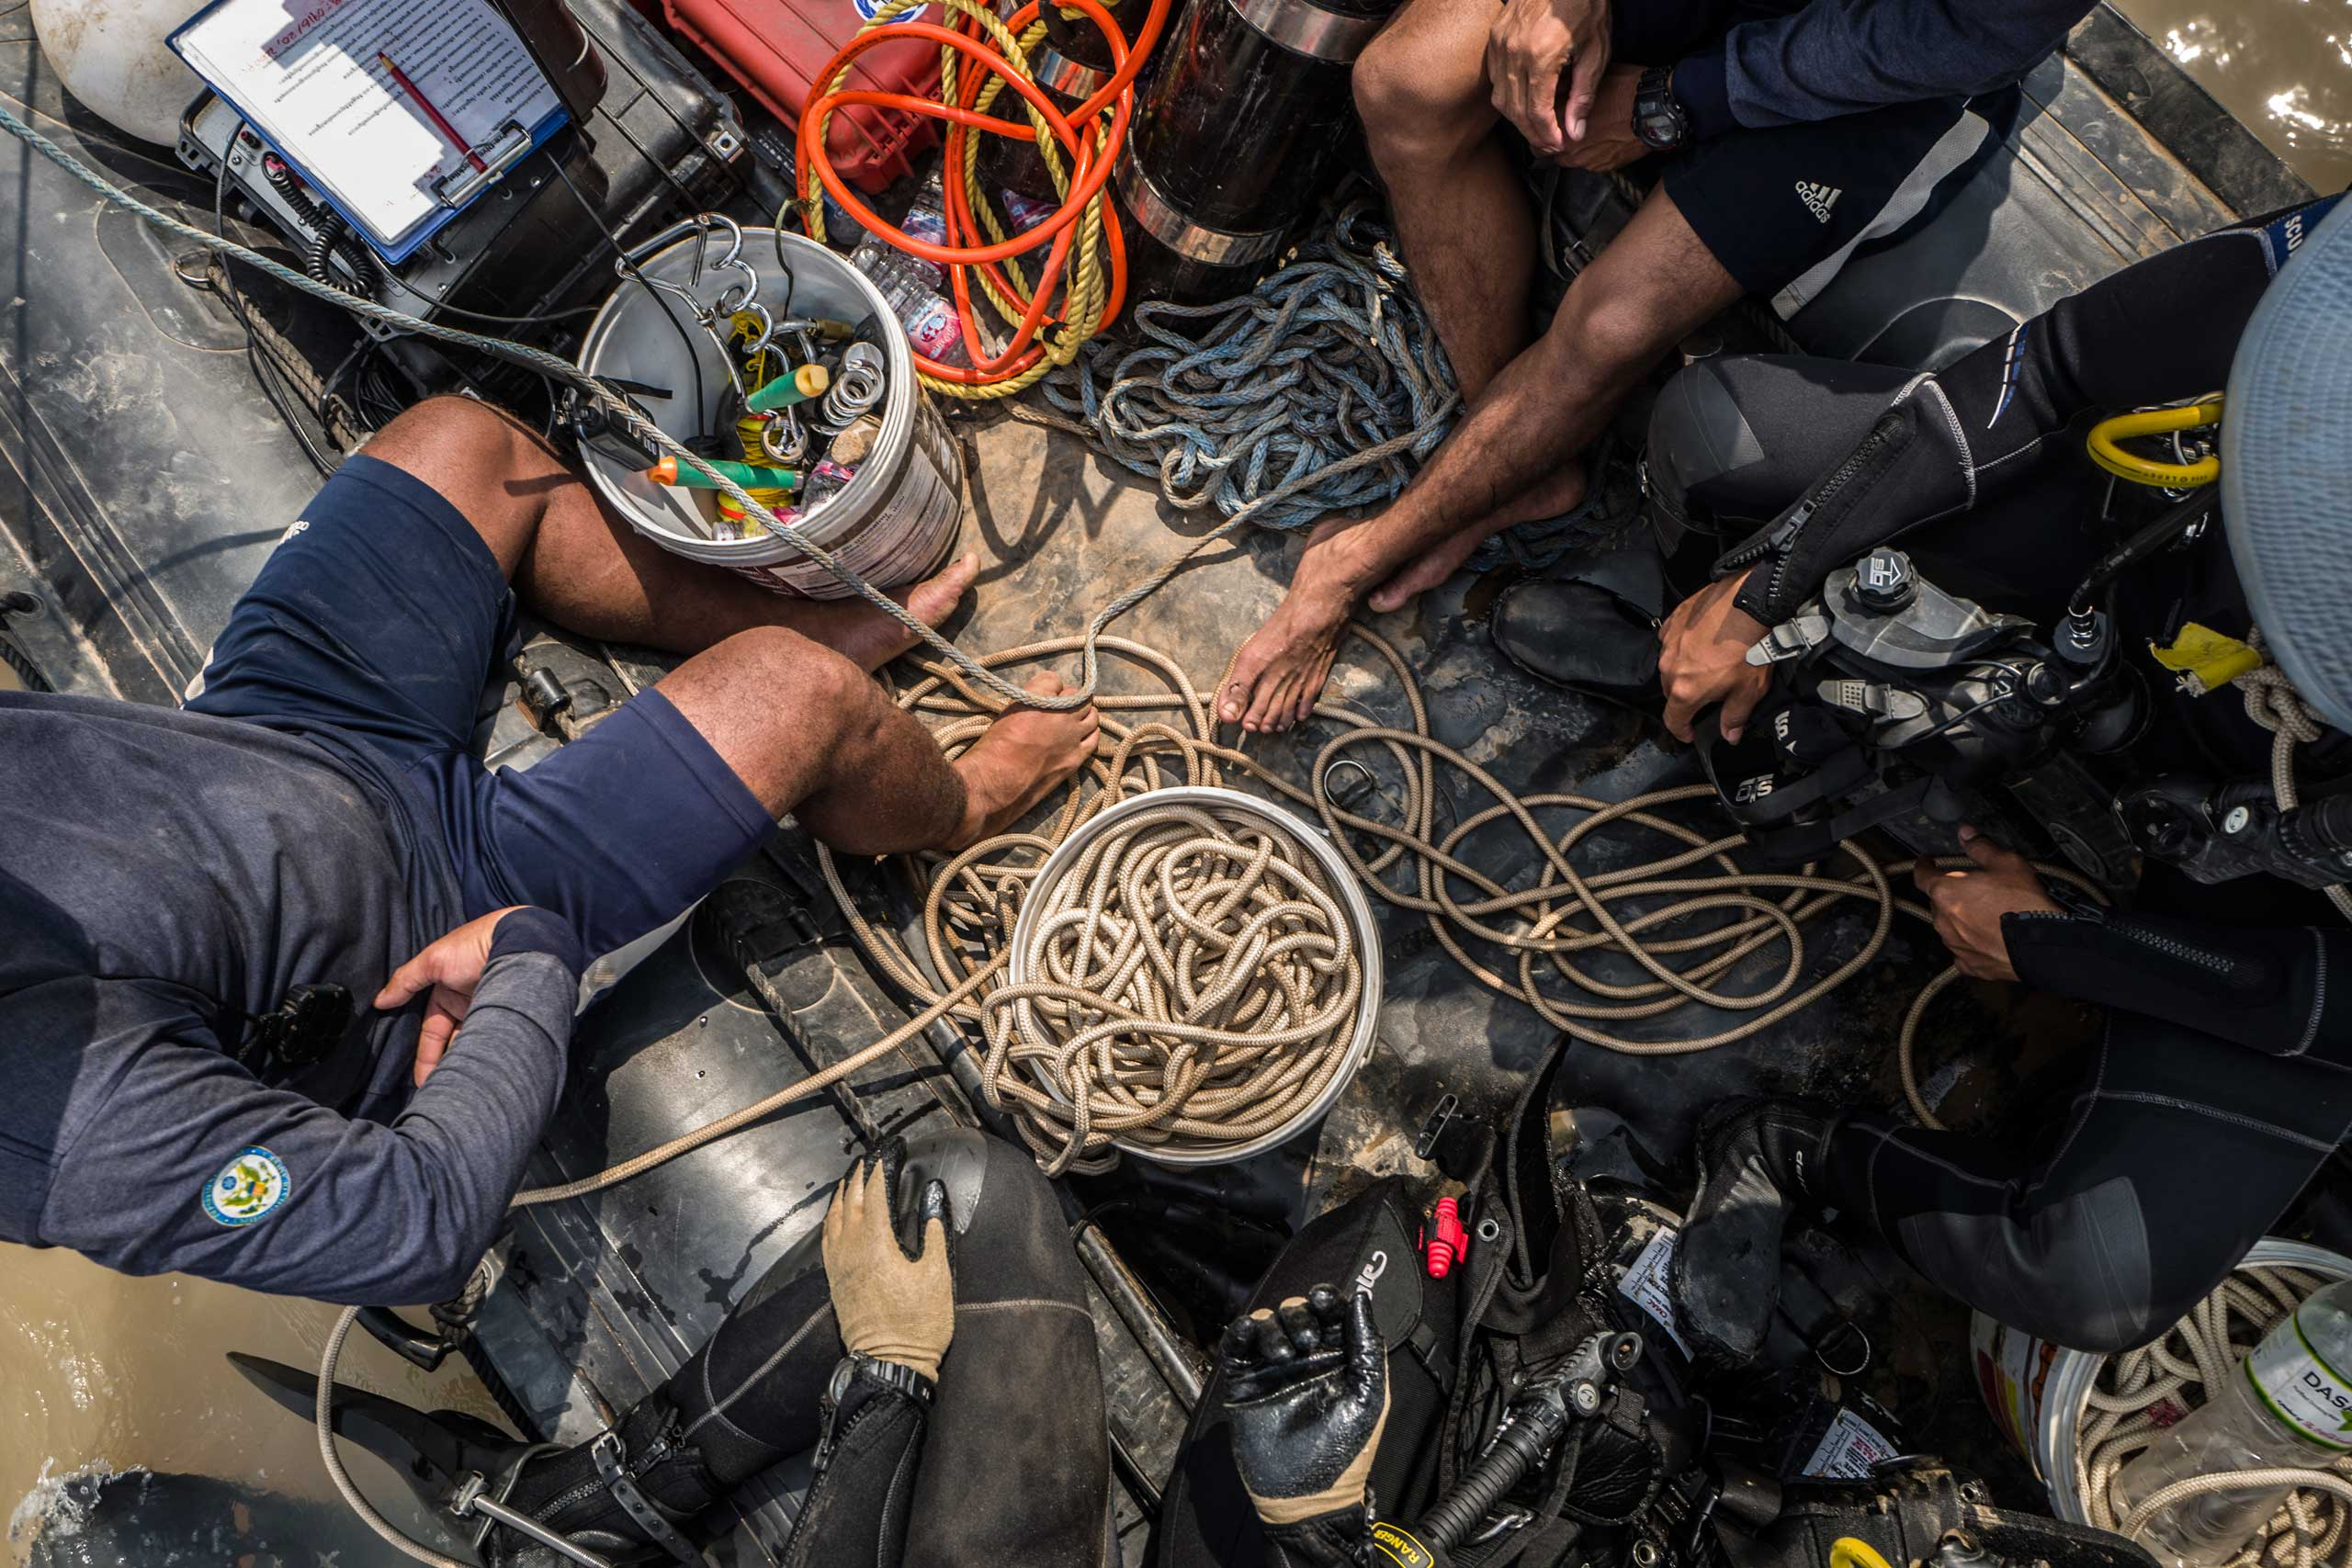 Inside of the divers' boat. The team carry all the equipment they need between two boats while on a mission in March 2016.